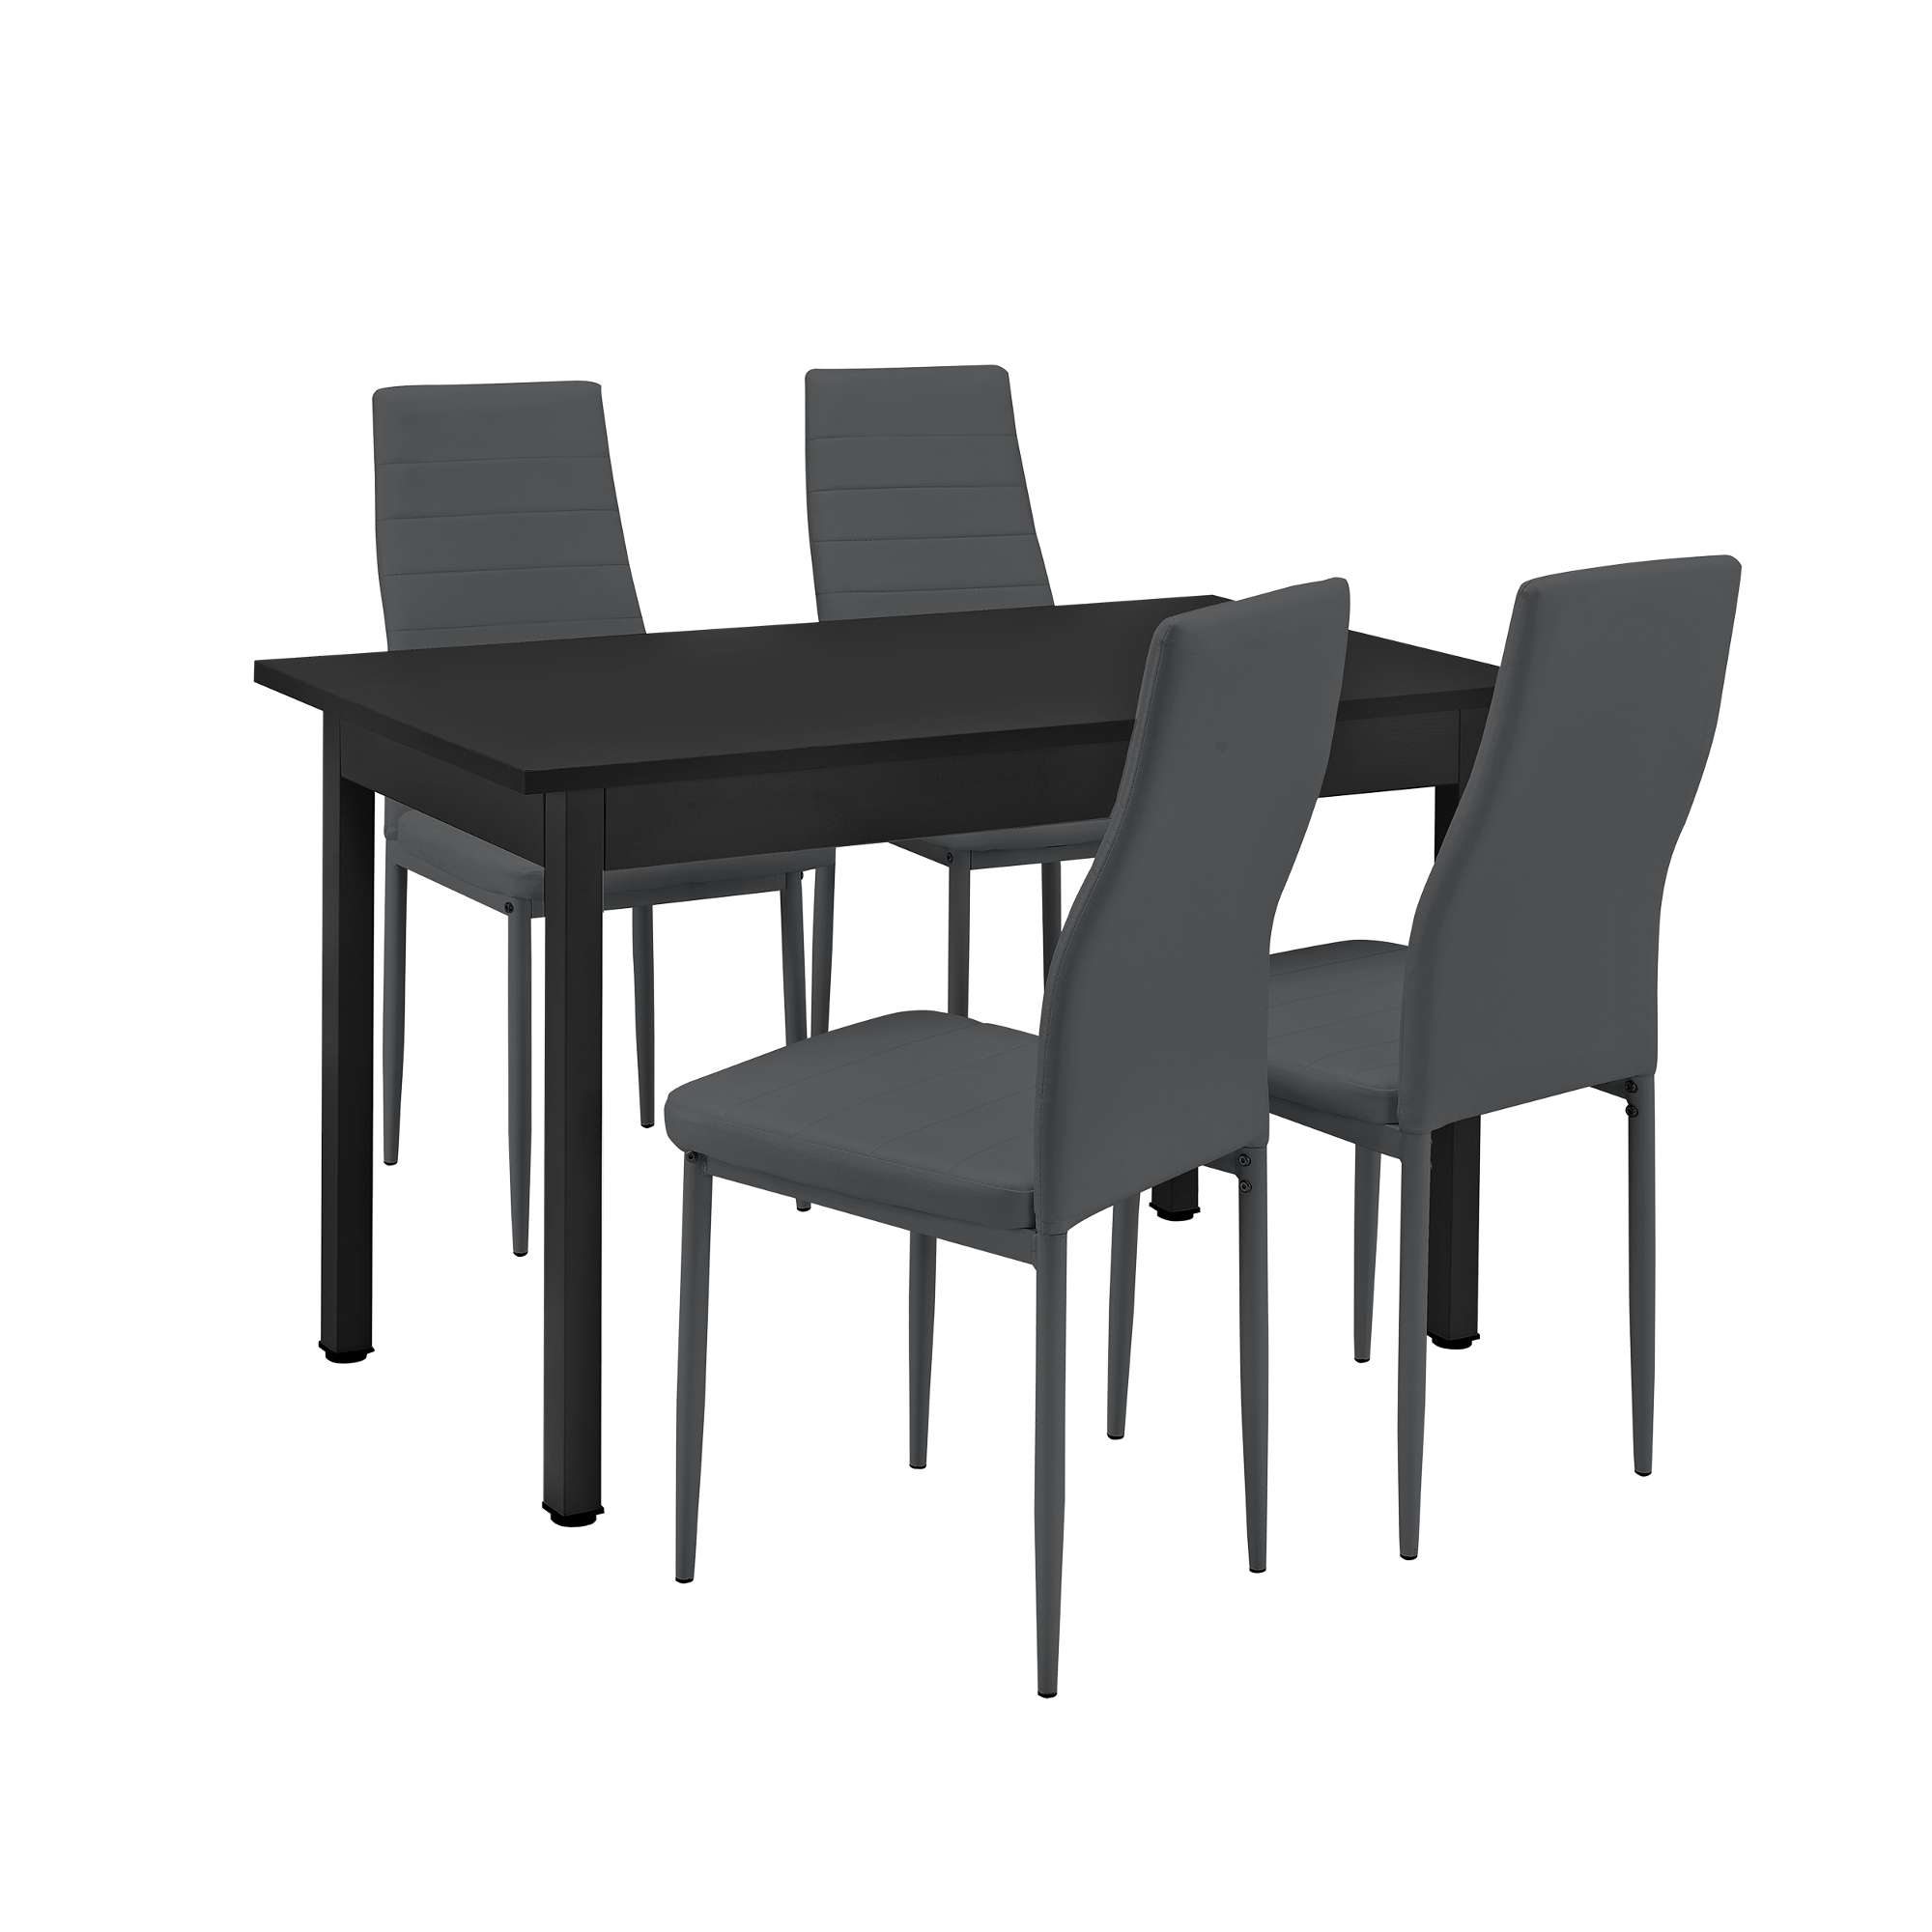 en.casa]® Table à manger + 4 chaises noir/gris 120x60 table de ...